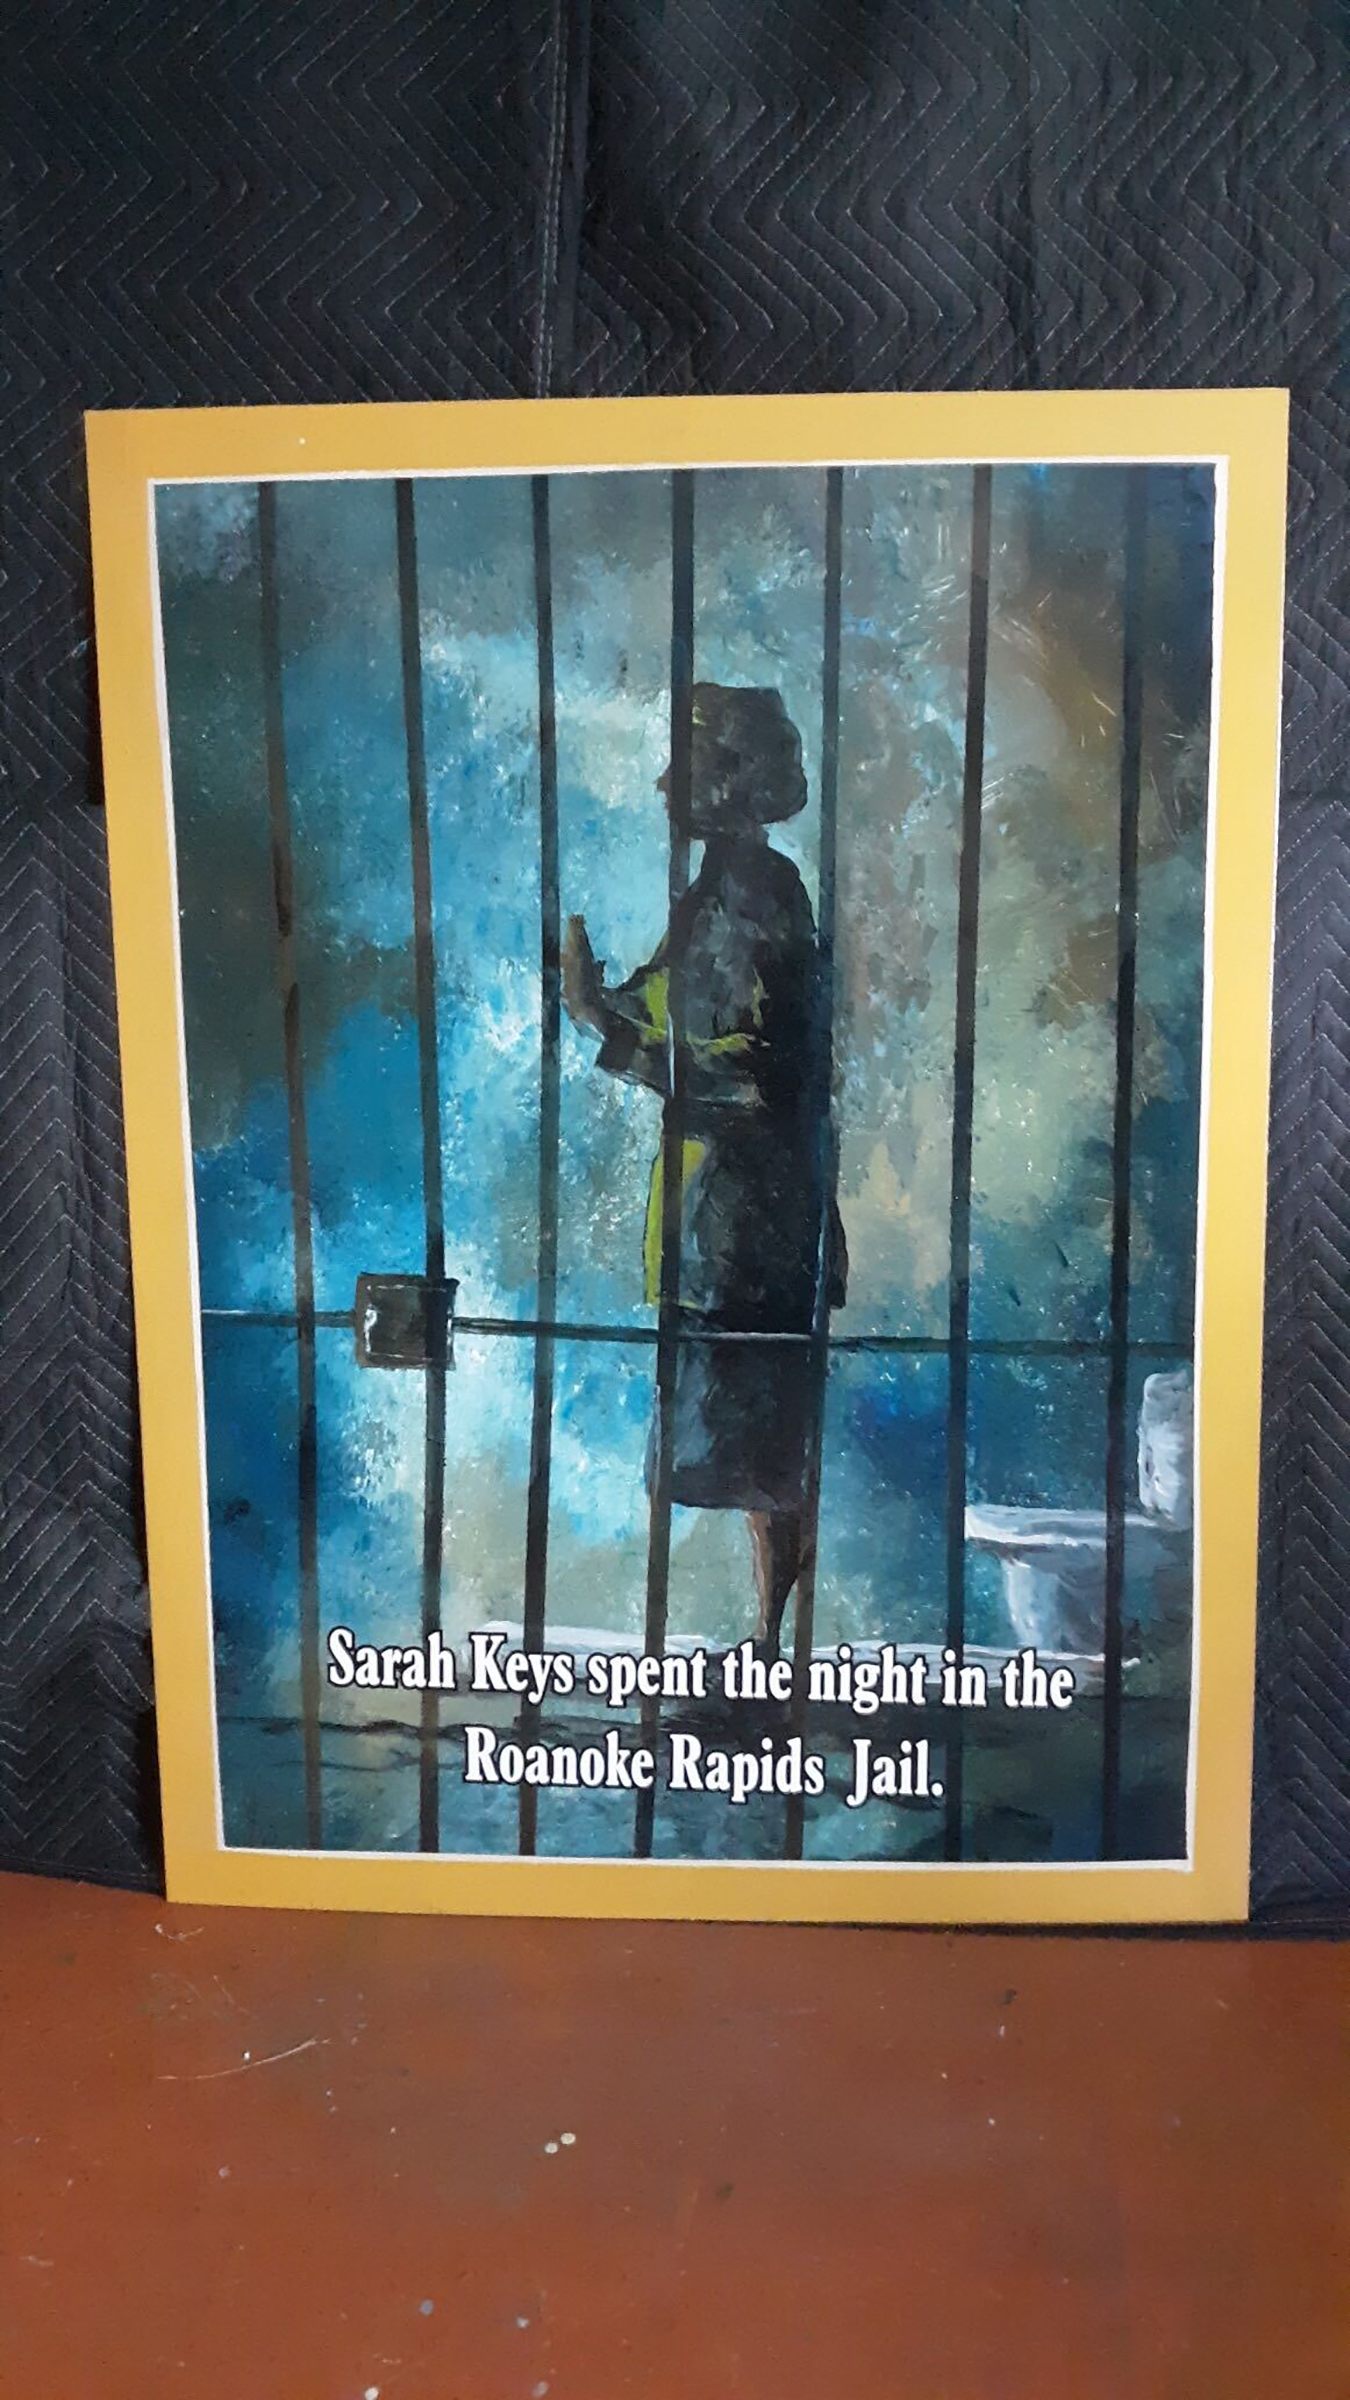 In artist Napolean Hill's studio, a panel in the new mural shows Private Keys in a Roanoke Rapids jail cell in the wee hours of Aug. 2, 1952, after refusing to give up her seat on an interstate bus to a white Marine.